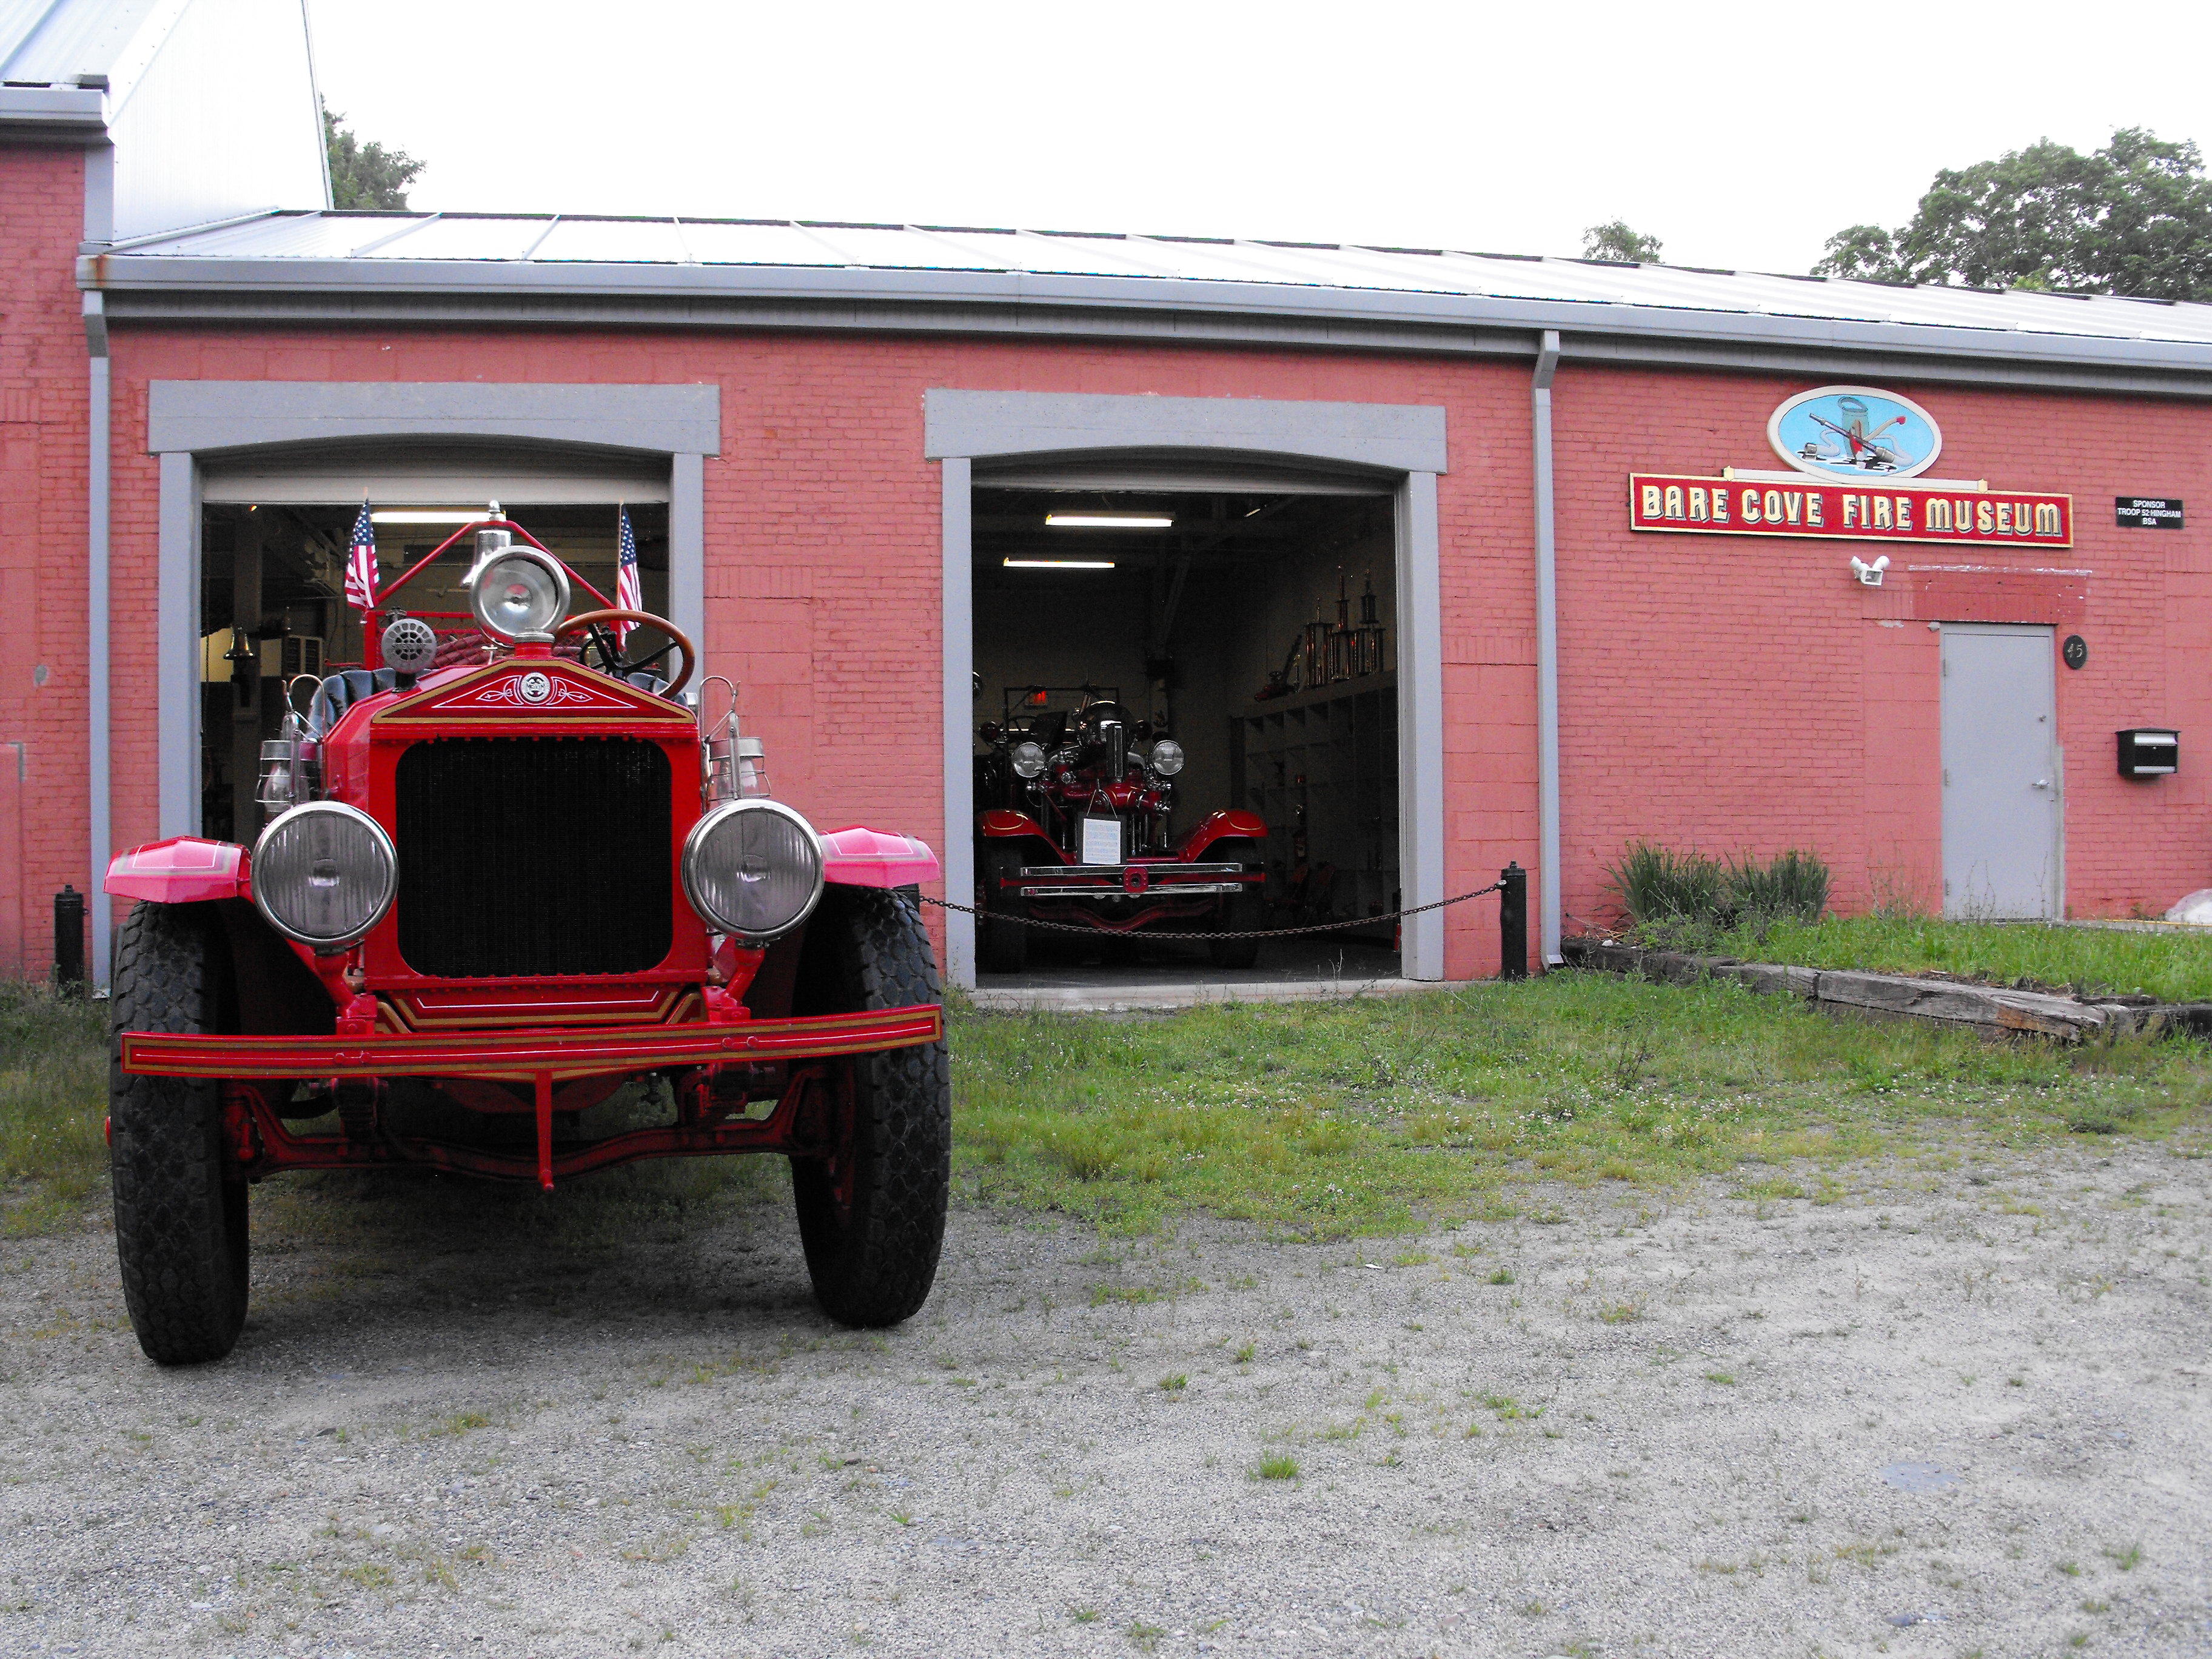 Bangshift Visits The Bare Cove Fire Museum: Vintage Firefighting Equipment Galore!